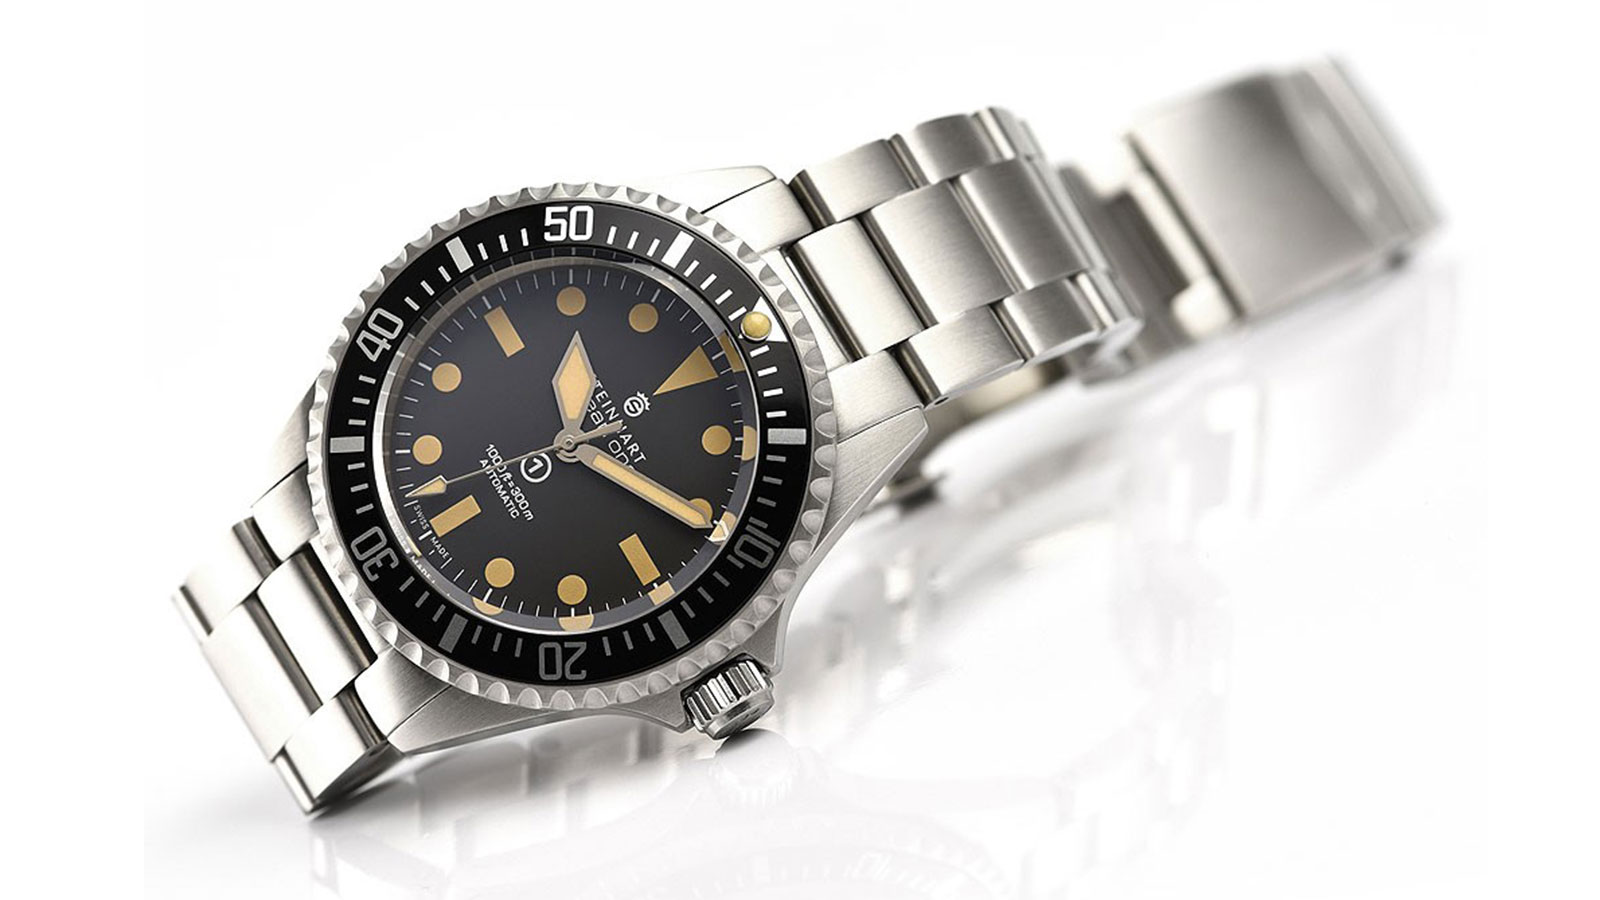 Steinhart Ocean Vintage Military Men's Watch | best men's watches under $500